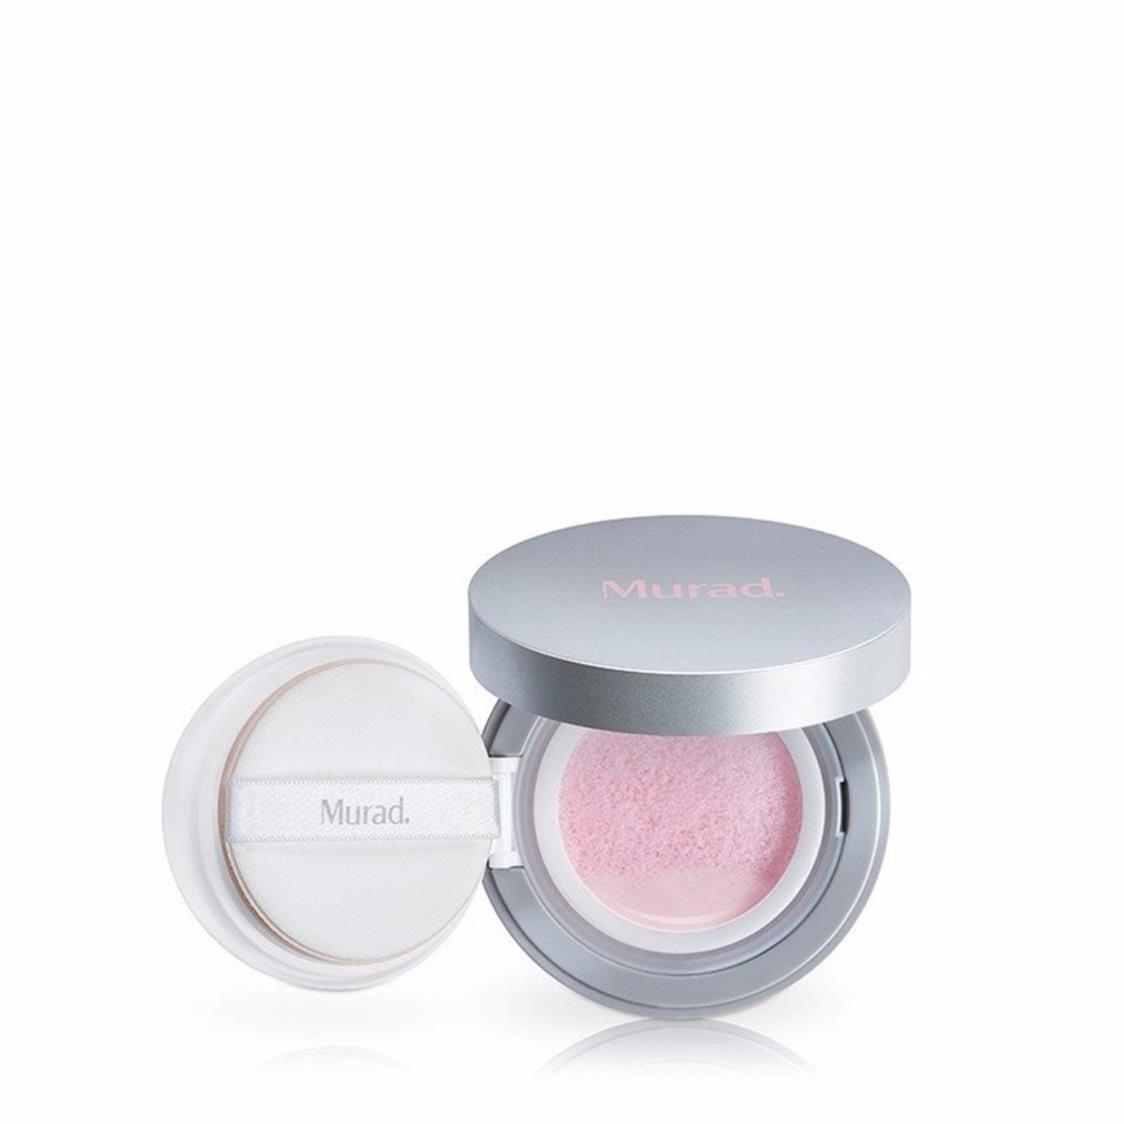 Matteffect Blotting Perfector 12ml